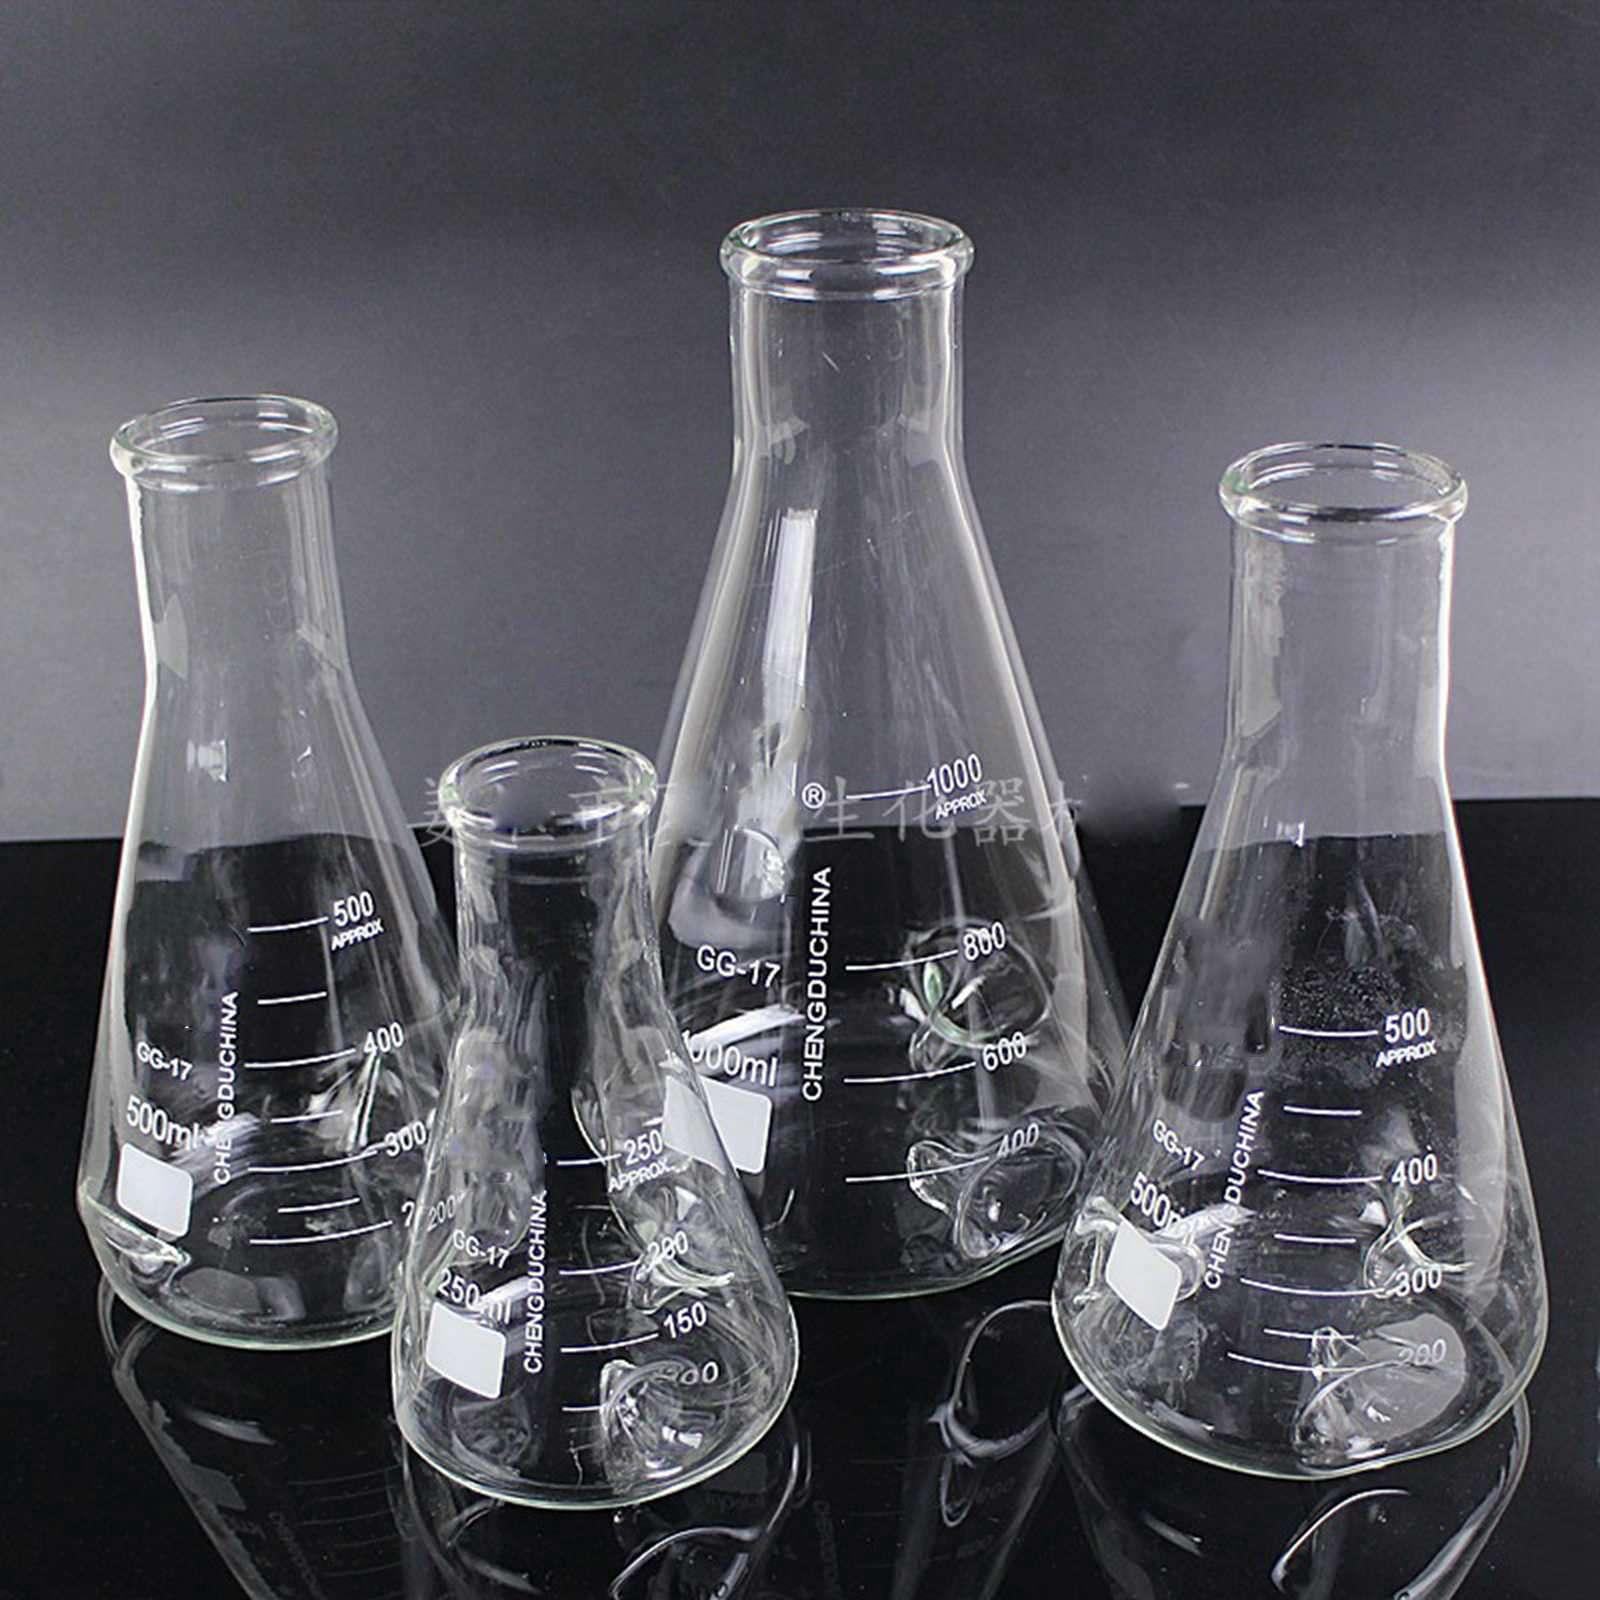 500ml 3 Concave GG17 Glass Flask Narrow Neck Conical Triangular Flask Laboratory Chemical Equipment